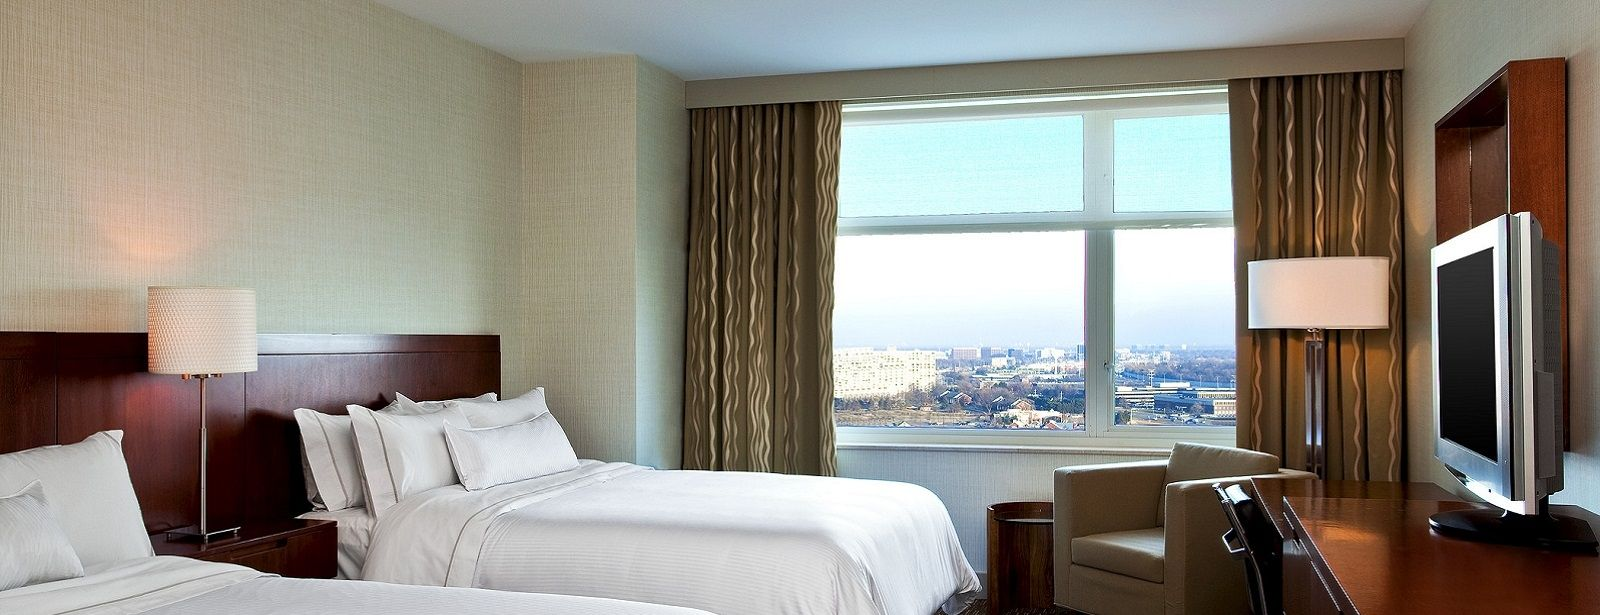 Lombard Hotel Rooms - Westin Executive Club Rooms